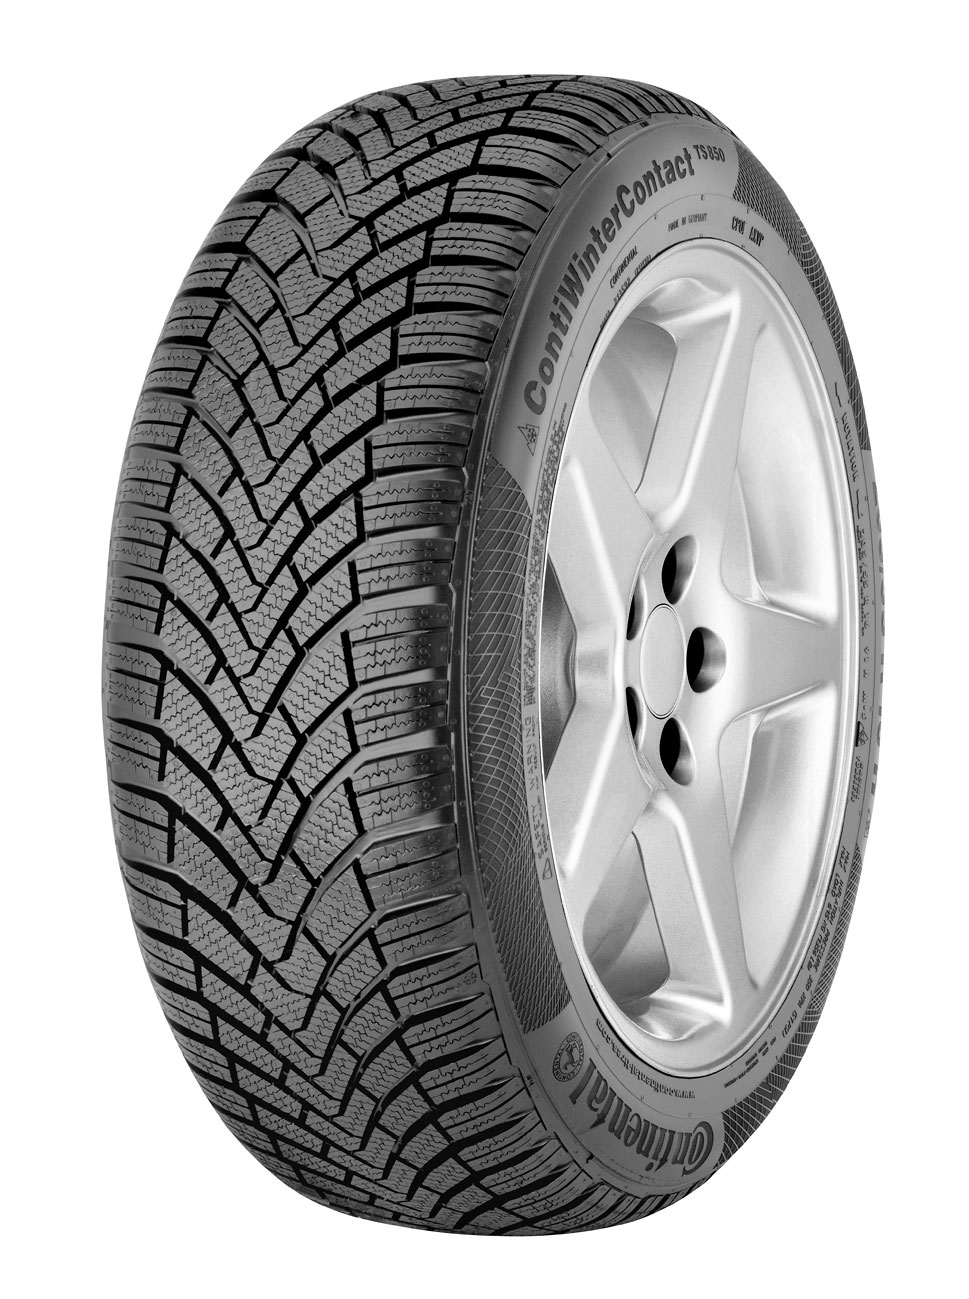 Anvelopa iarna CONTINENTAL WINTER CONTACT TS850P SUV 235/65 R17 104H